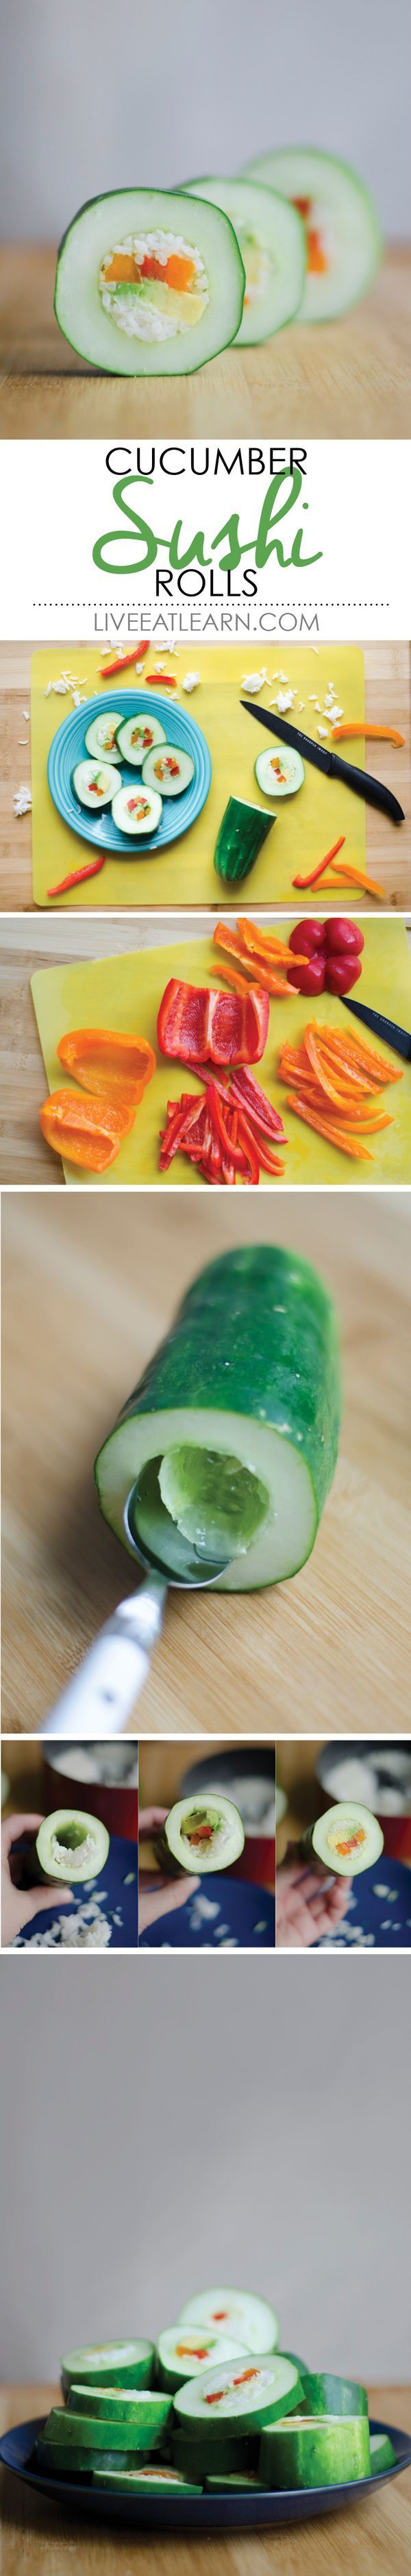 Hollow out a cucumber, stuff it with avocado, rice, bell pepper, and your favorite sushi fillings, slice it and there you have it! This recipe is a healthy, low calorie alternative sushi. Be prepared to fall in love with cucumber.